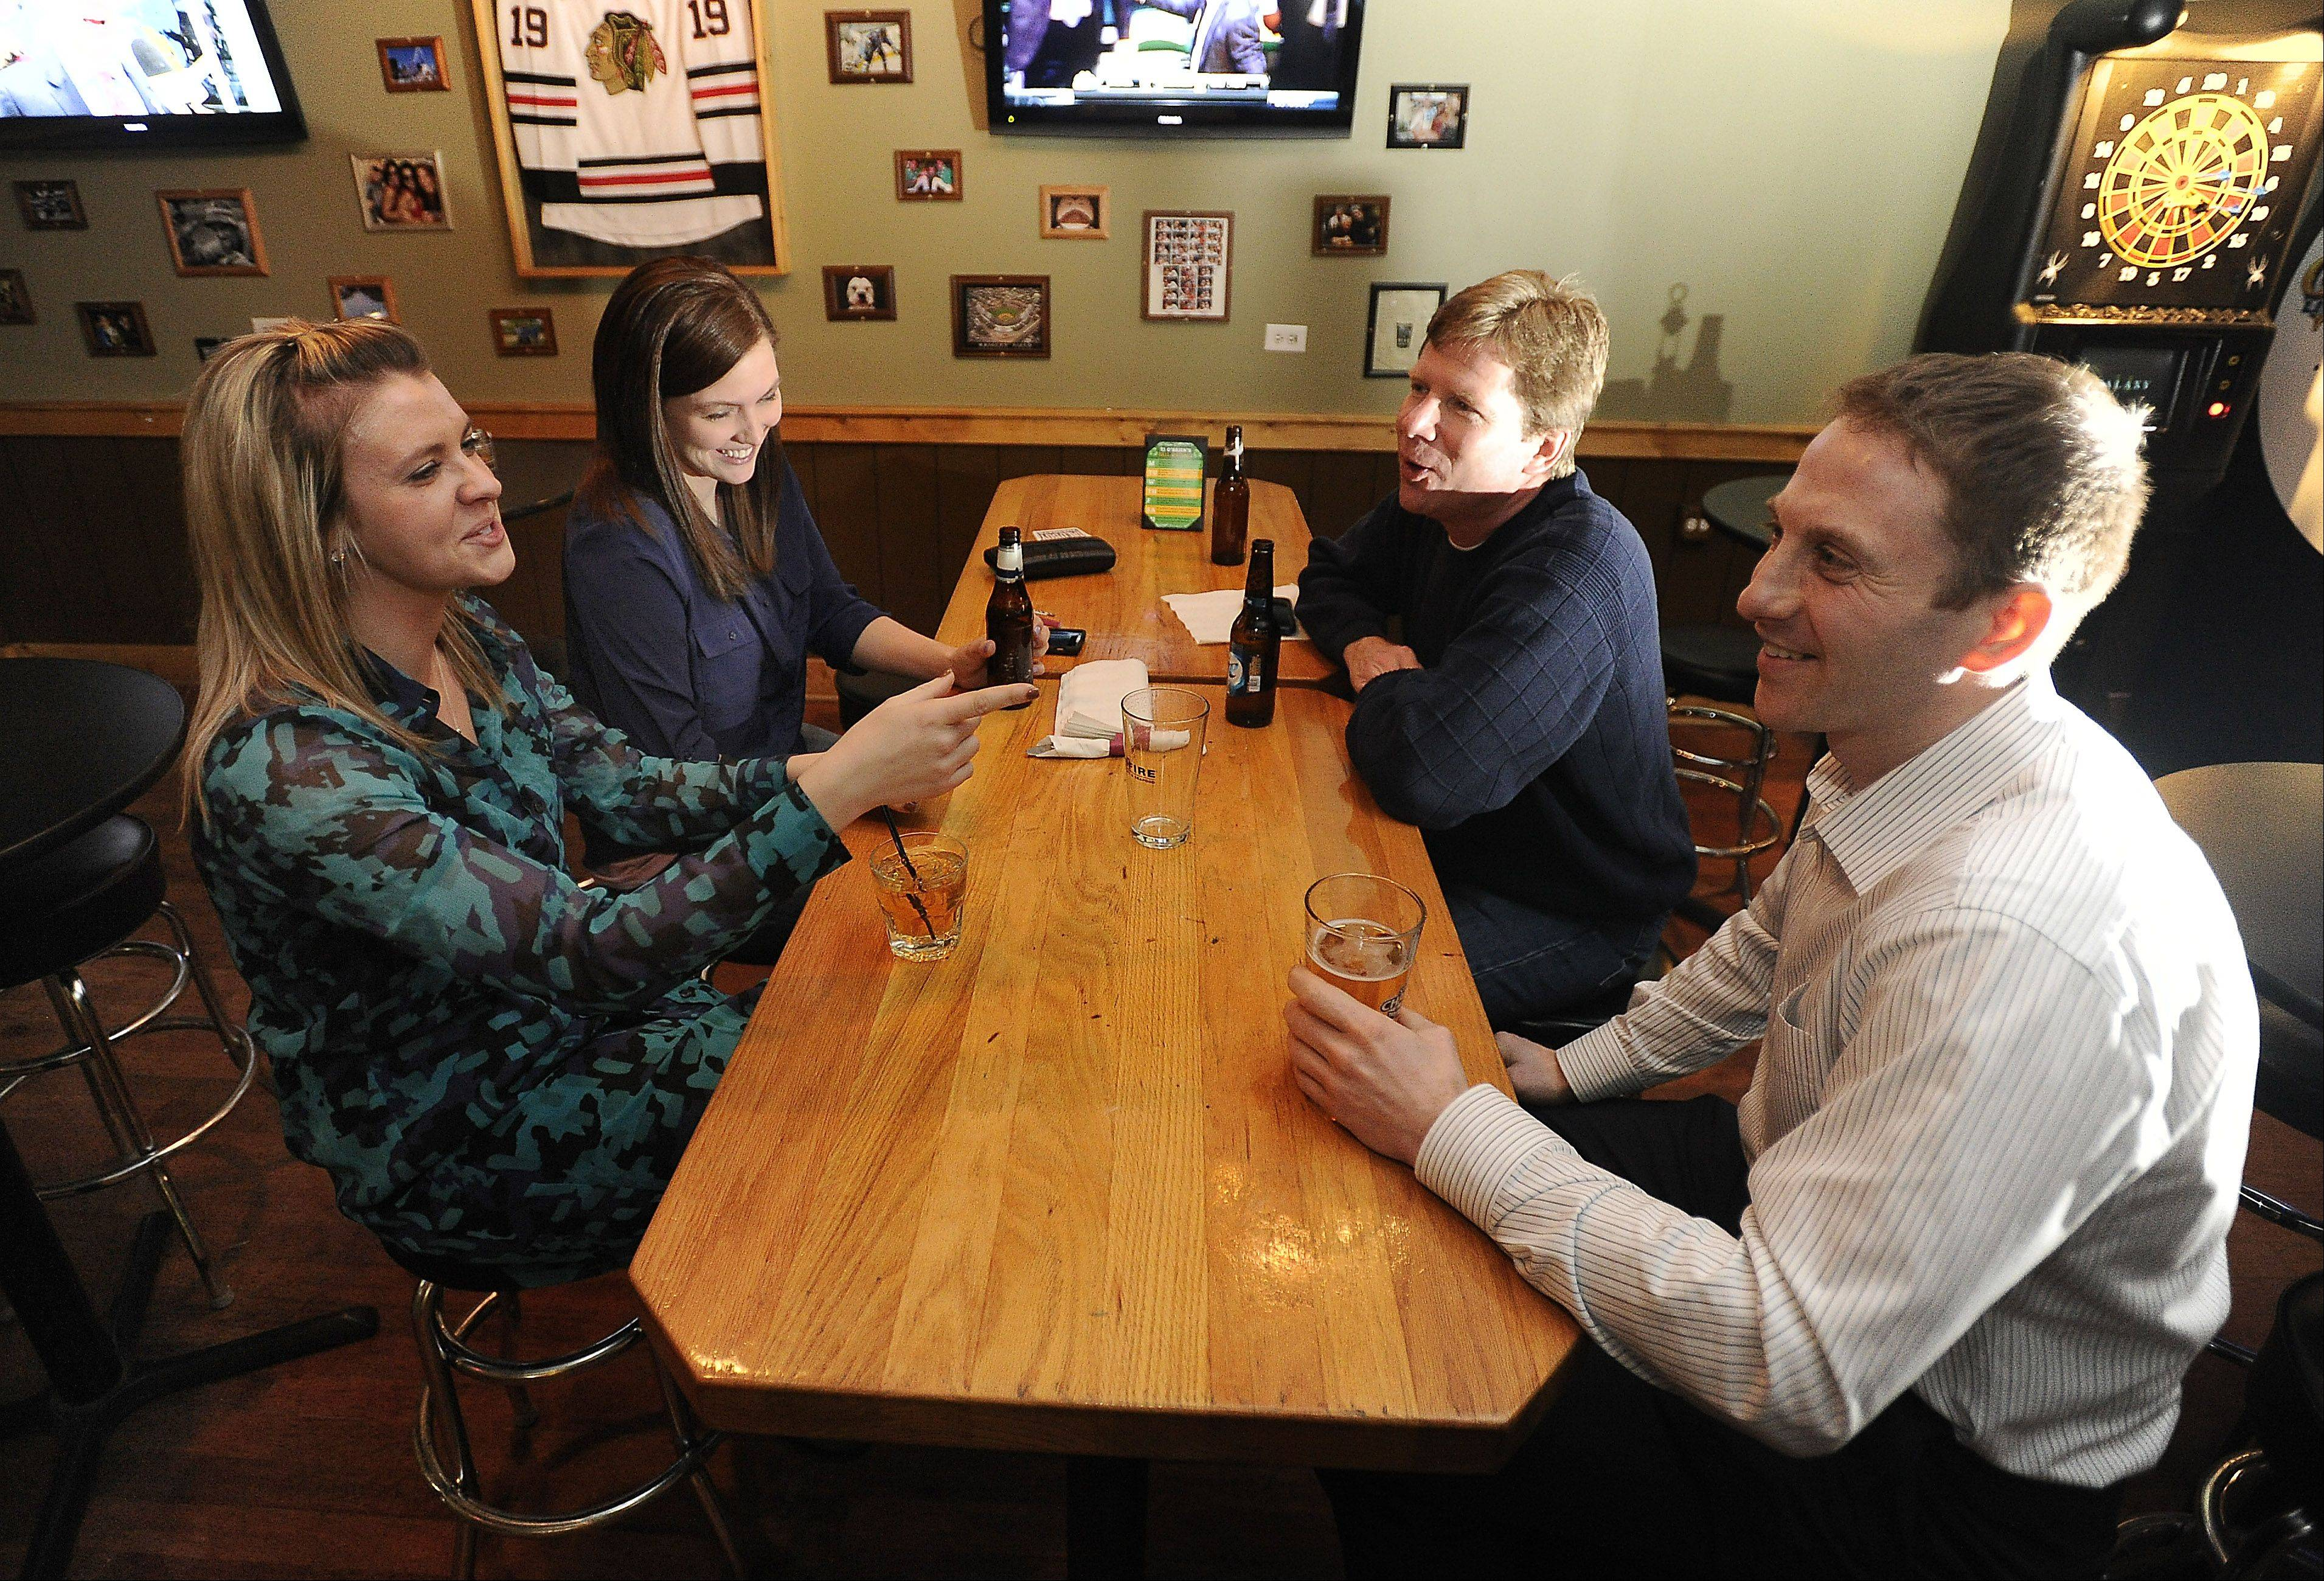 TJ O'Brien's Bar and Grill in Palatine caters to patrons like Lucy Paul of Chicago, Sheena Harrison of Itasca, Mike Kunstman of Palatine and Joe Fahndrich of Chicago.